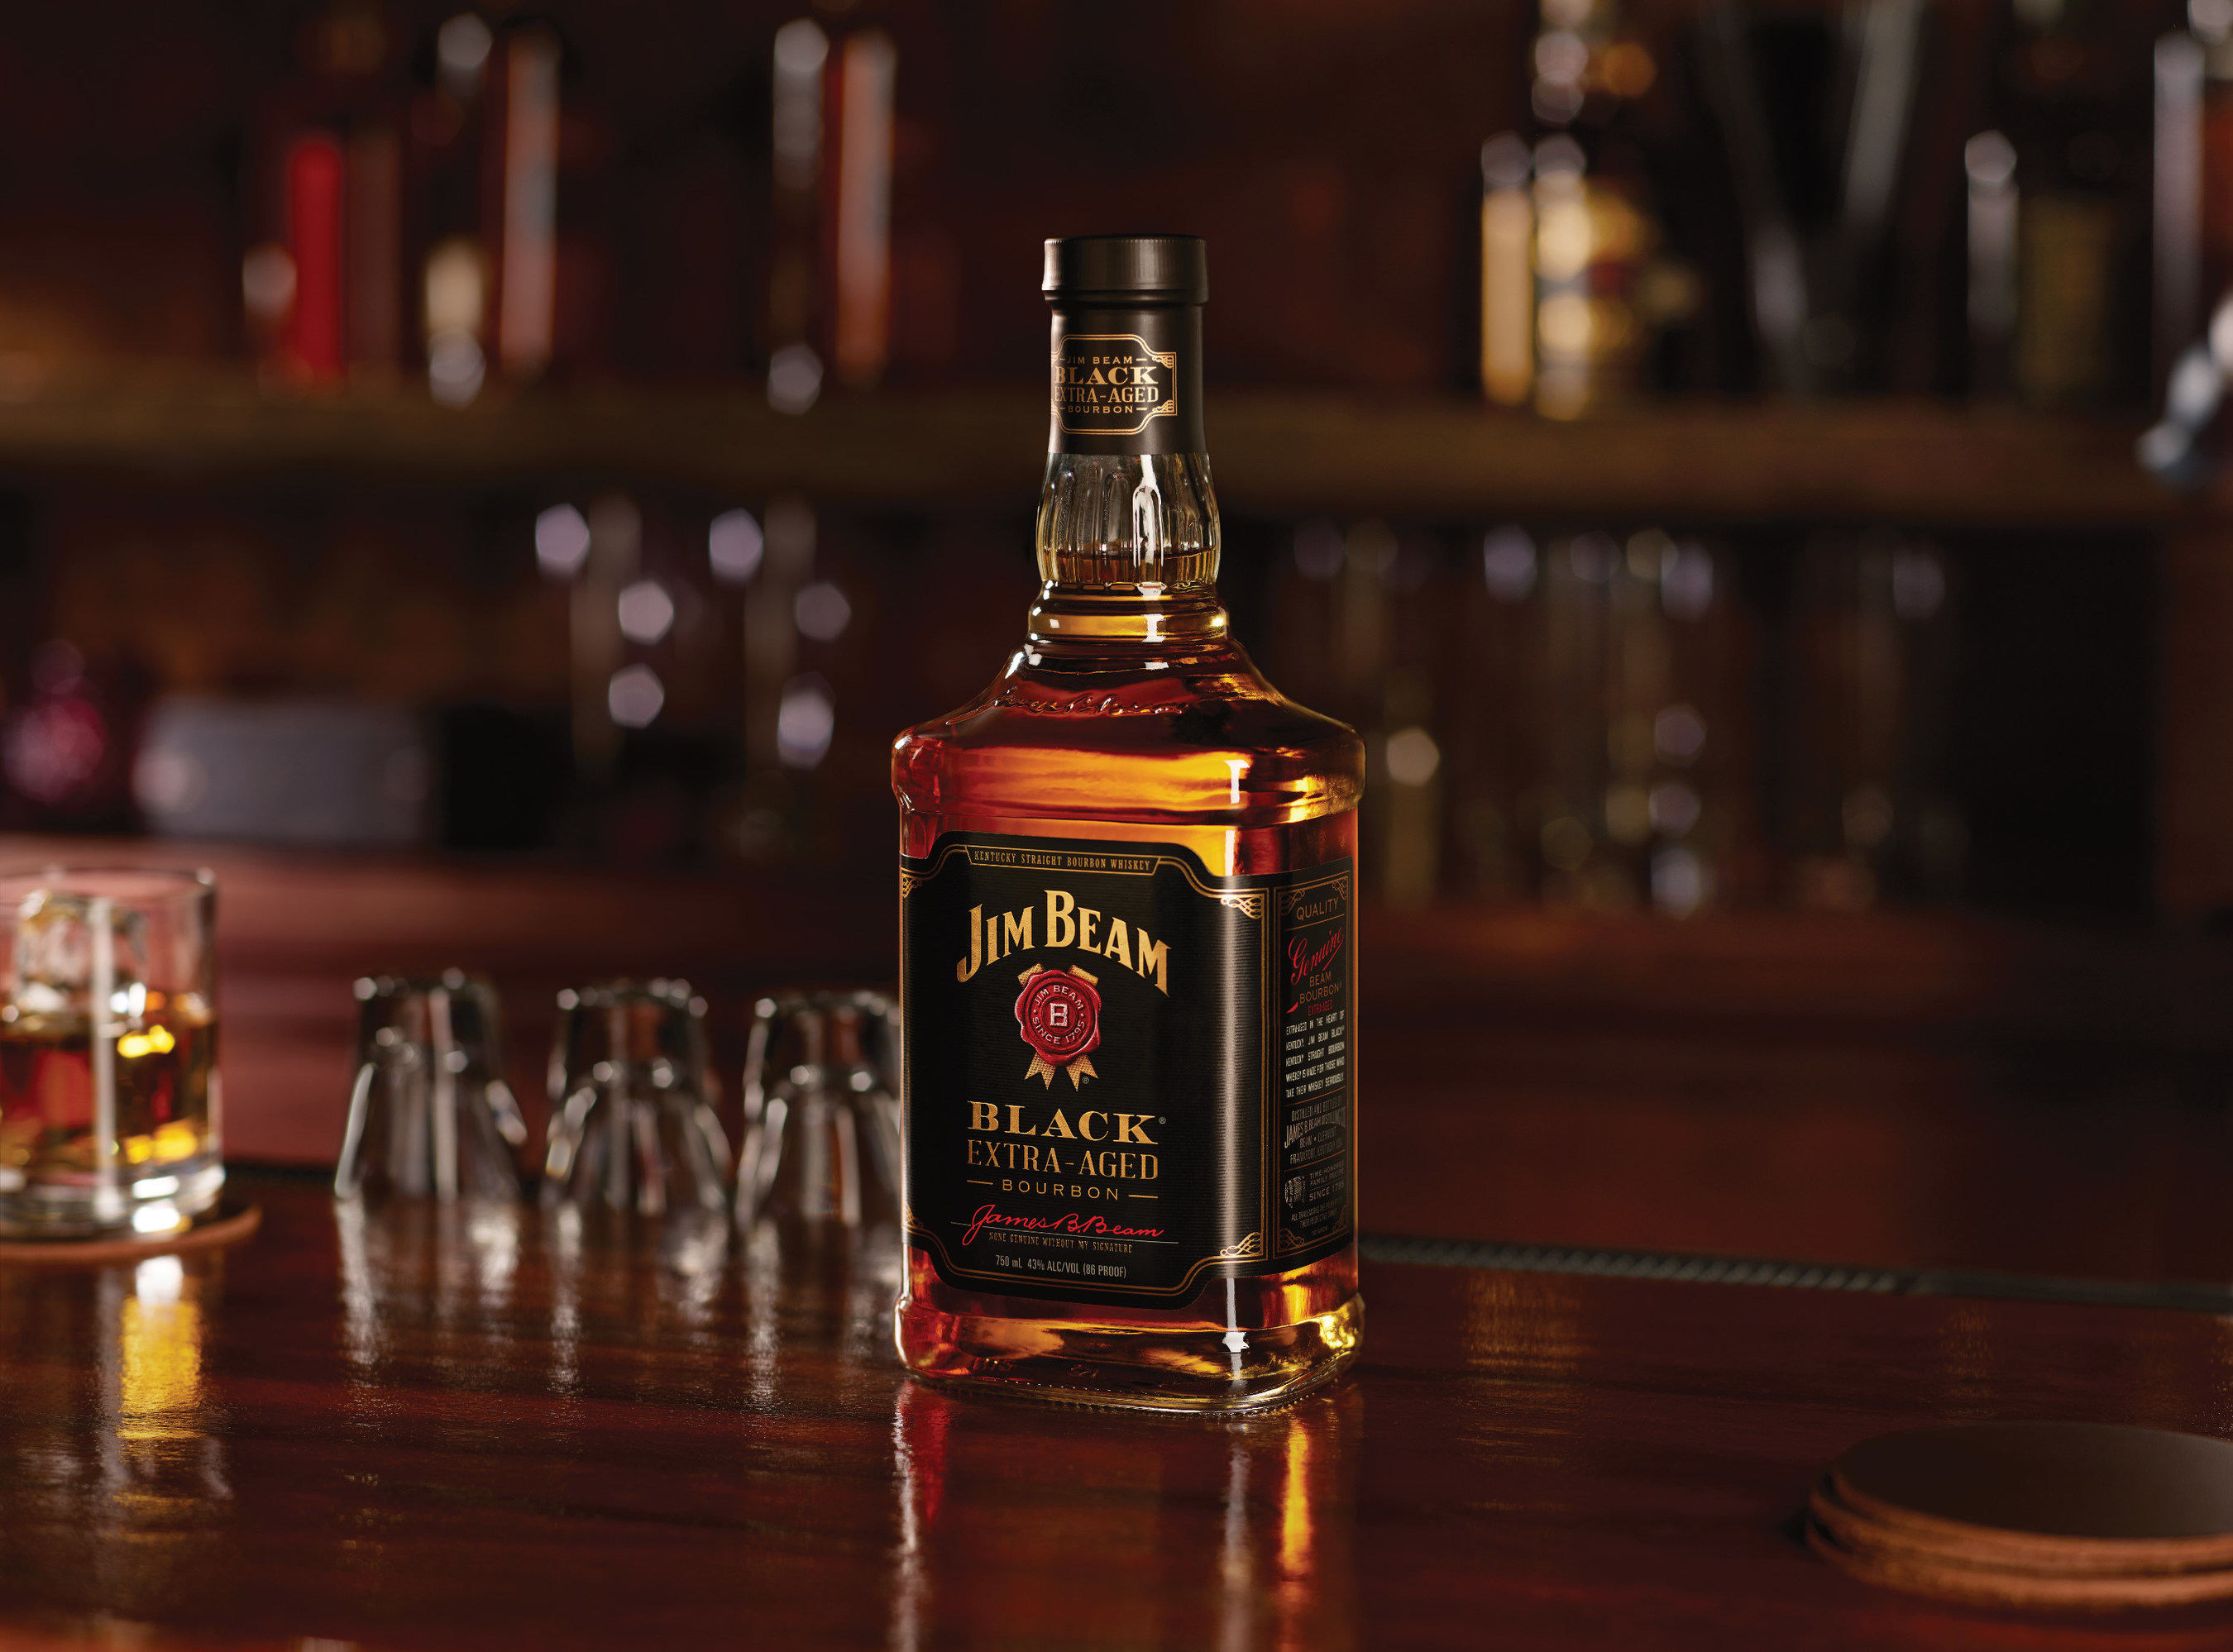 The Results Are In American Whiskey Drinkers Prefer The Taste Of Jim Beam Black 23 Over One Of The Most Expensive And Rare Bourbons In The World